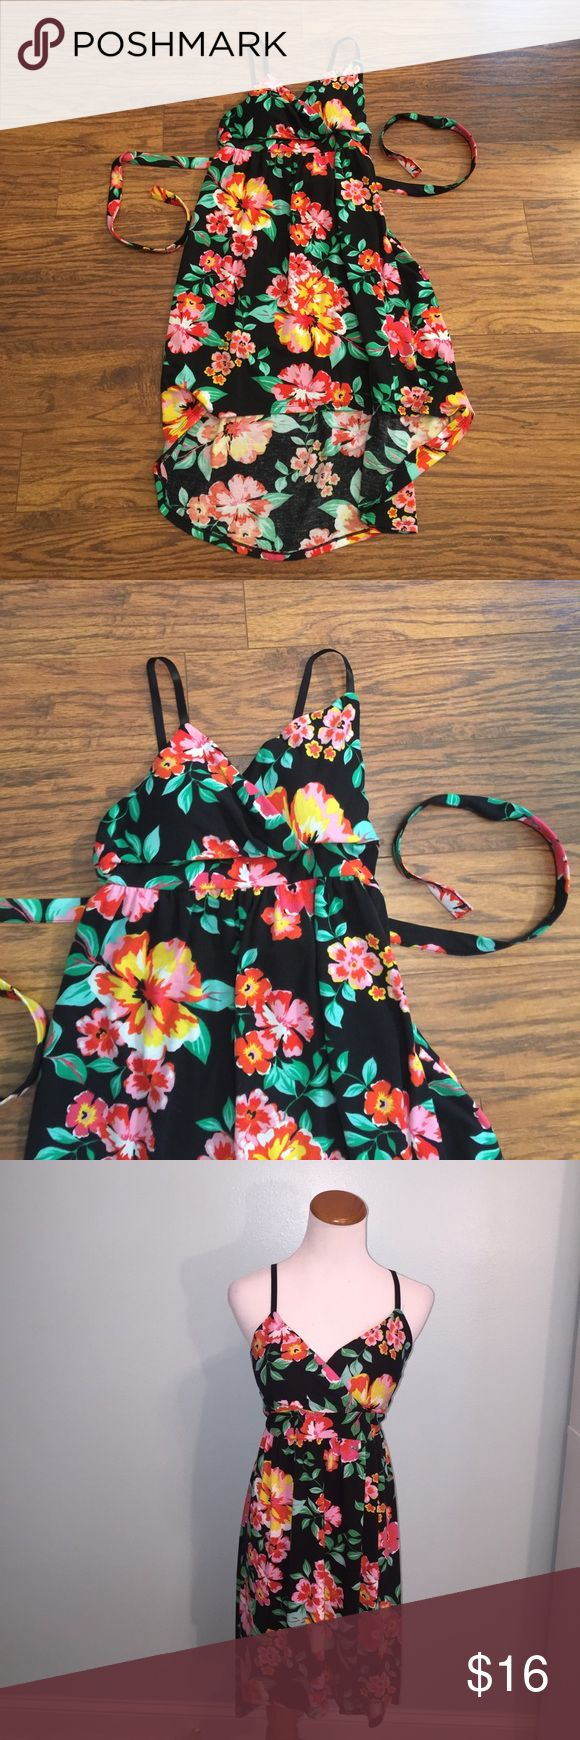 Tropical print hi-lo dress with padded bra cups Size large (juniors). Features padded bra cups and adjustable straps. Ties in back. Elastic band in back. Polyester/spandex blend. No Boundaries Dresses High Low